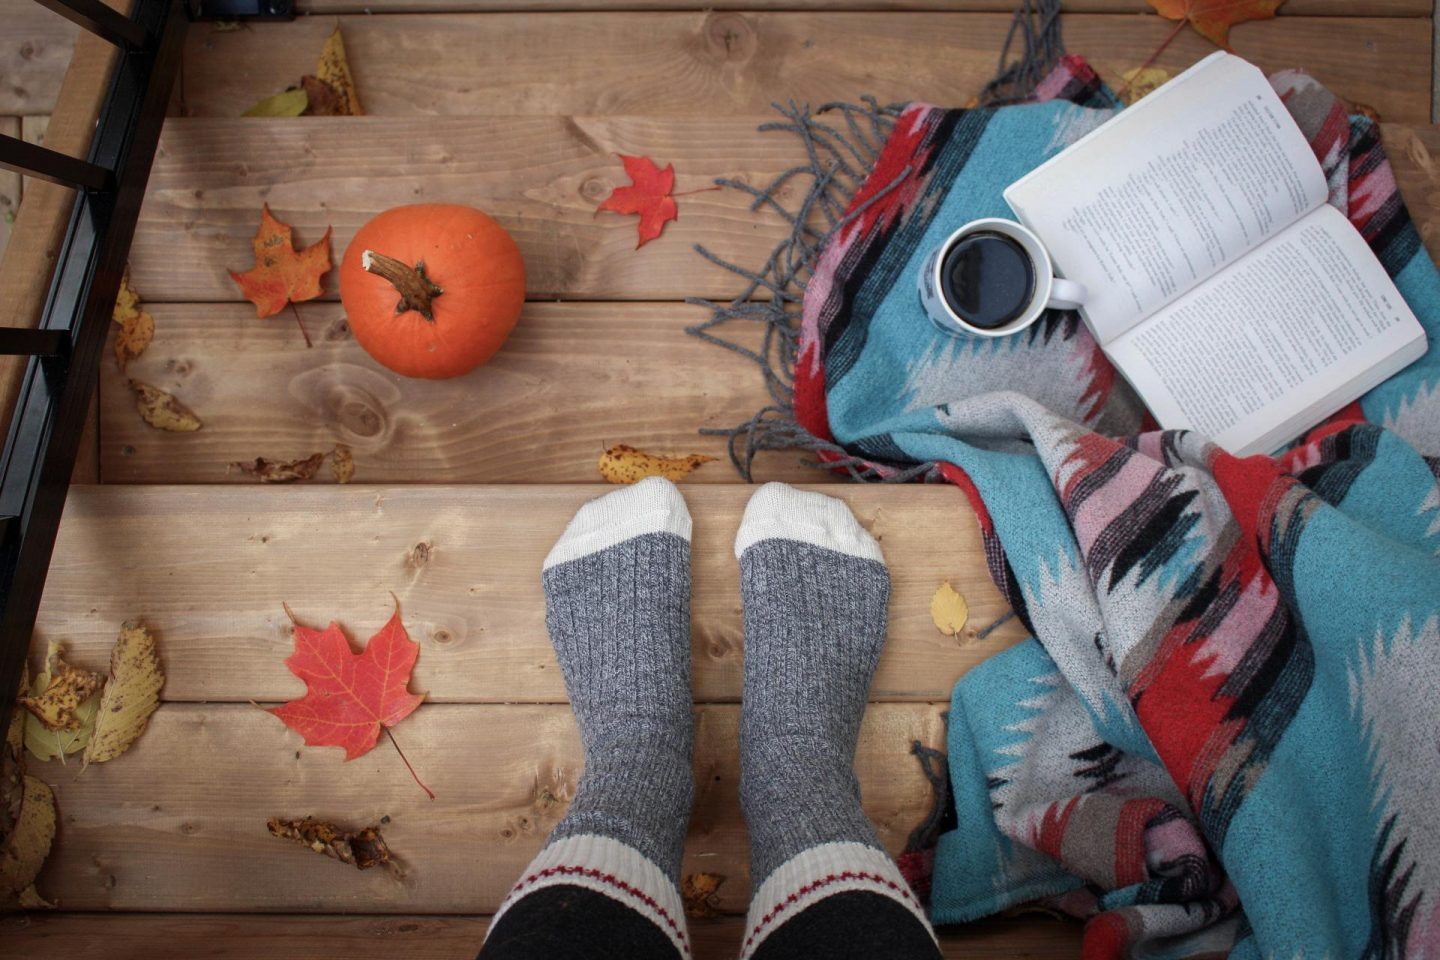 The 7 inevitable stages of #Blogtober18